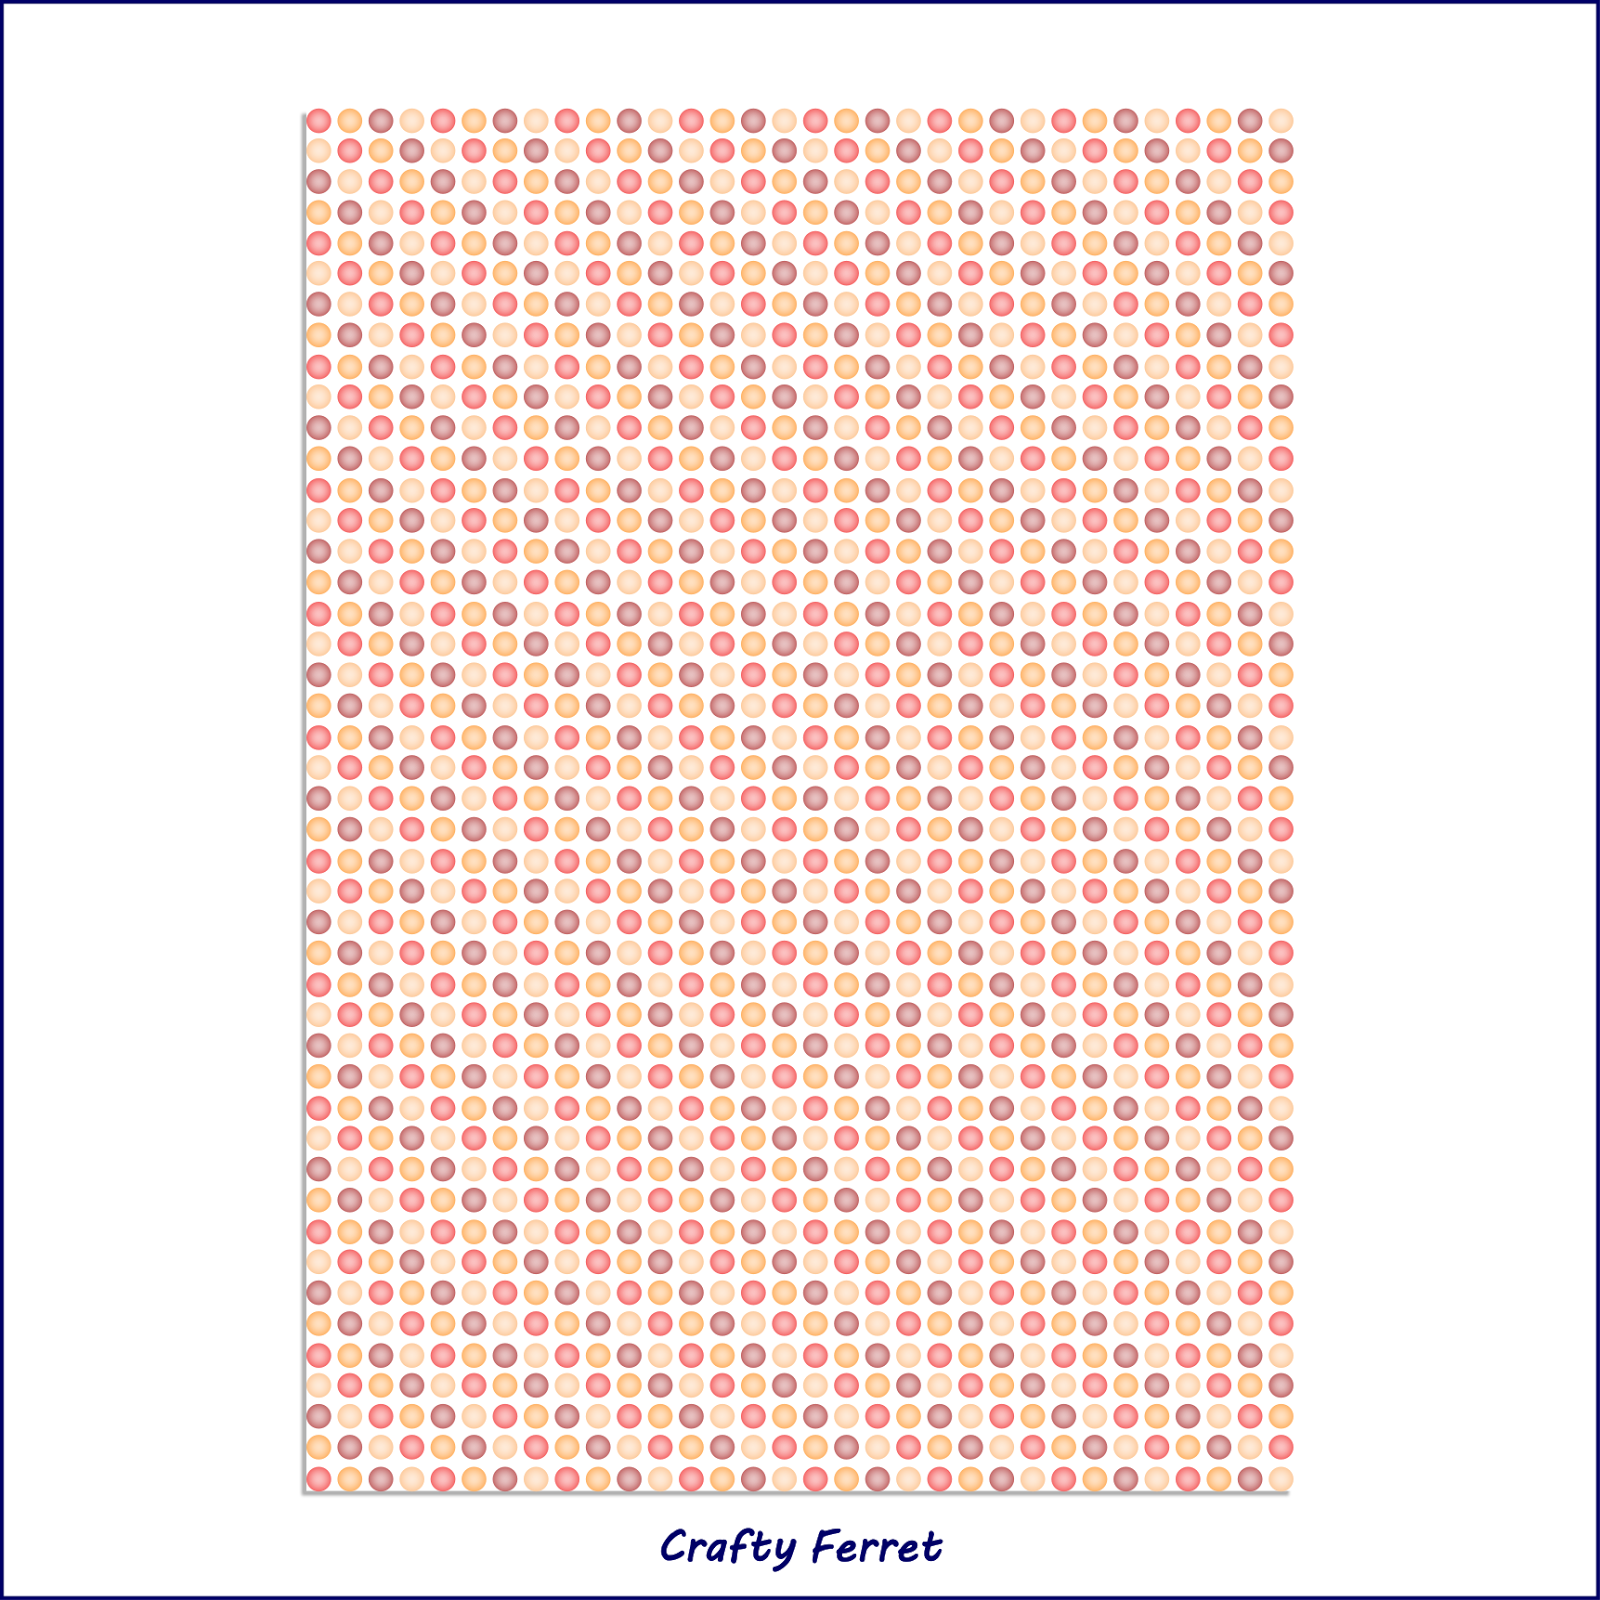 A4 printable red, yellow and orange faded spots craft backing paper.